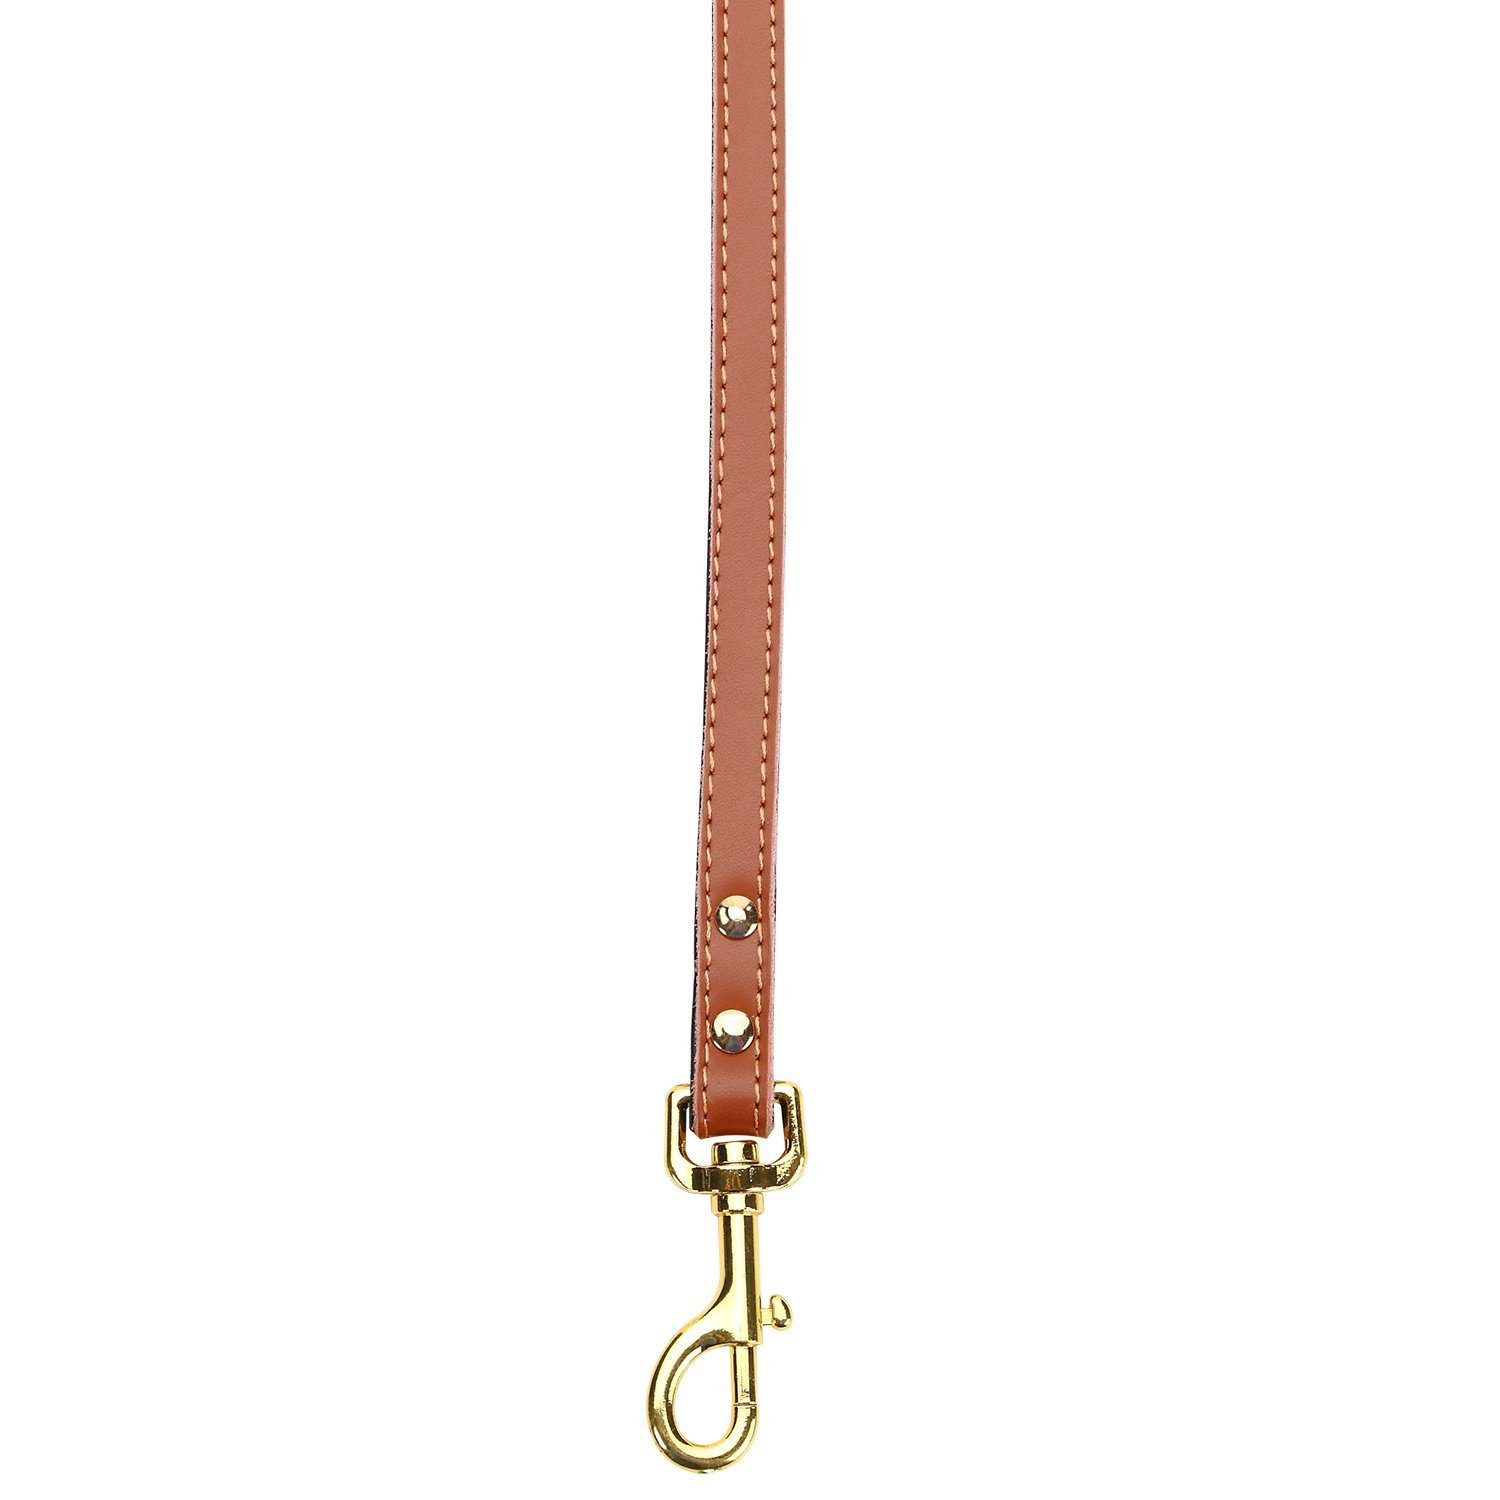 Petween Basic Classic Leather Pet Leads Leashes for Cats Puppy Small Medium Dogs